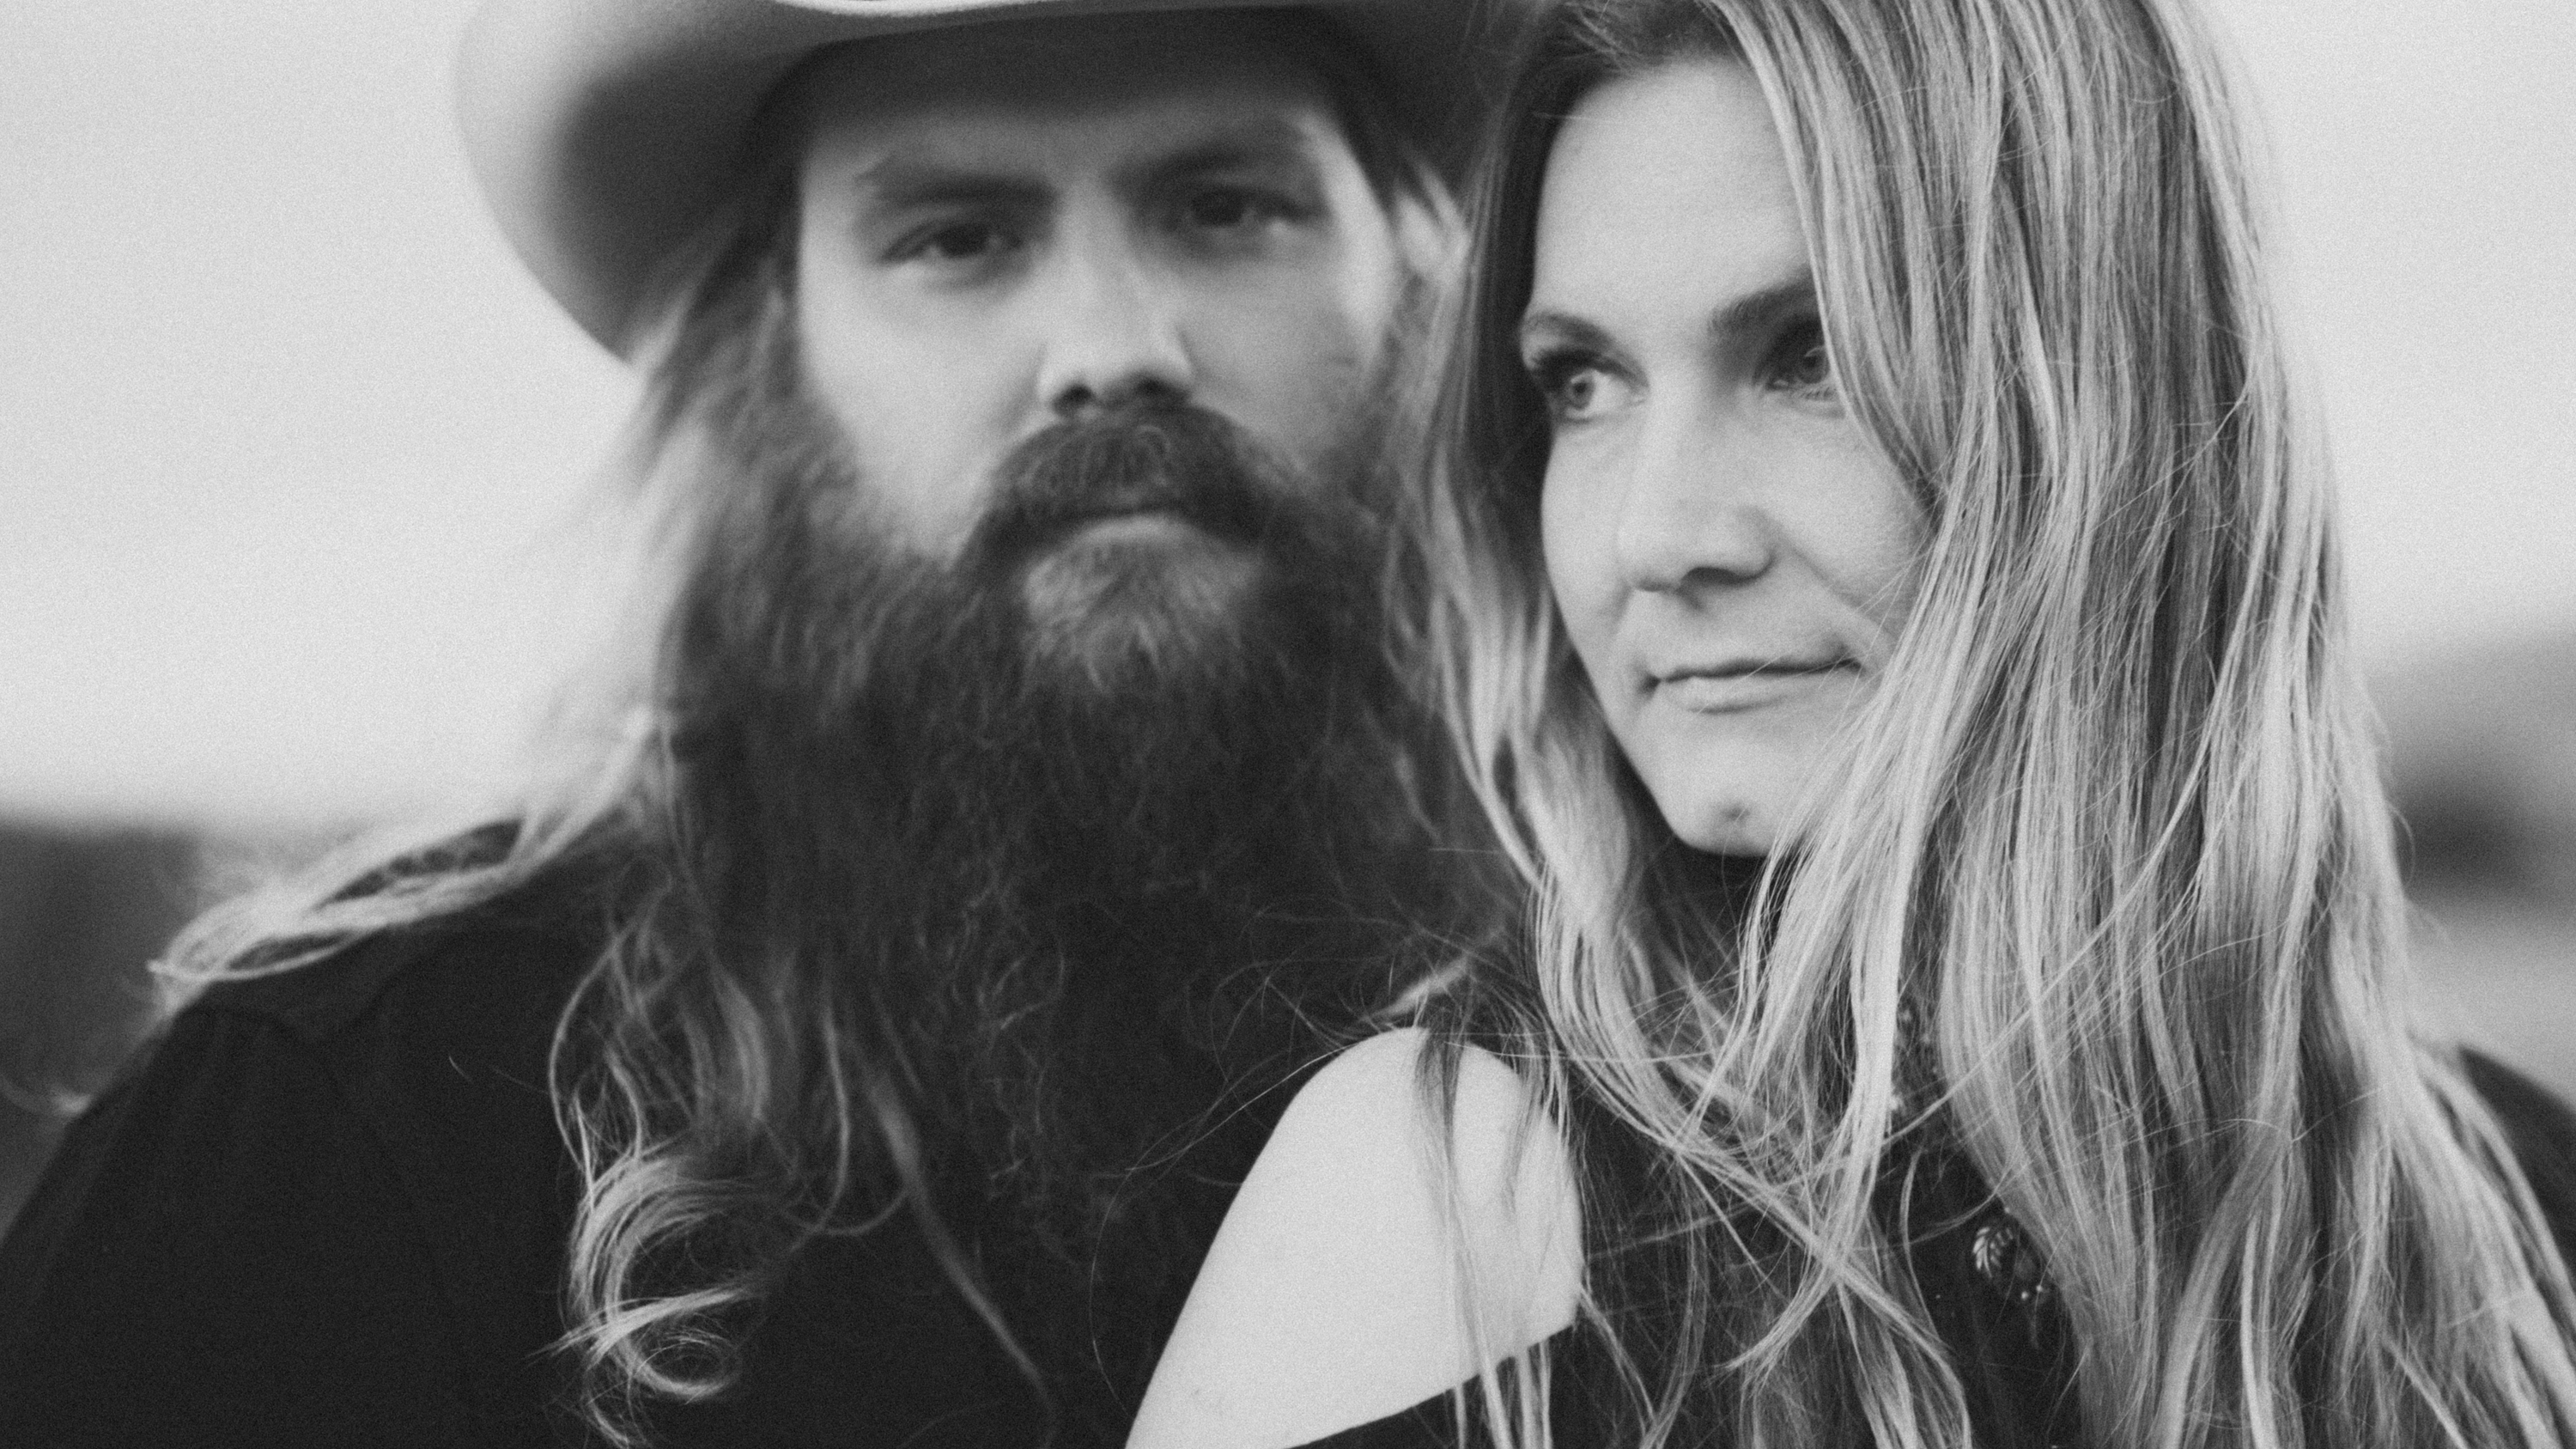 Songs we love morgane stapleton with chris stapleton for What songs has chris stapleton written